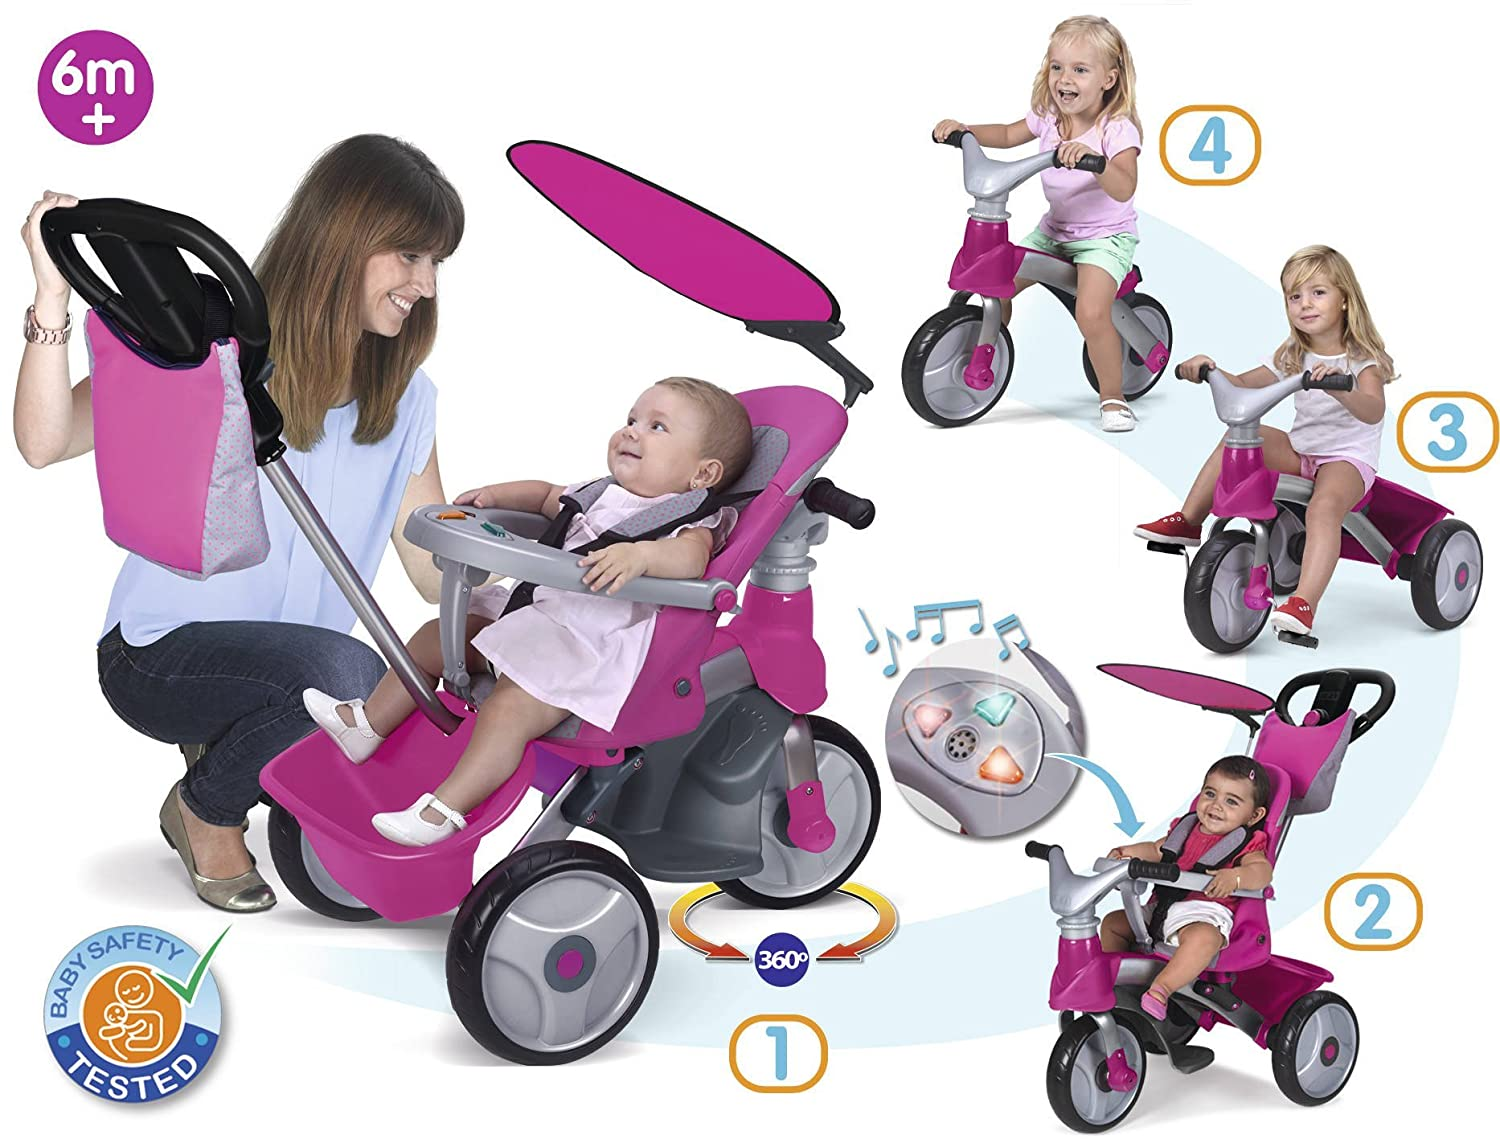 FEBER - Triciclo Baby Trike Easy Evolution, Color Rosa (Famosa 800009561): Amazon.es: Juguetes y juegos